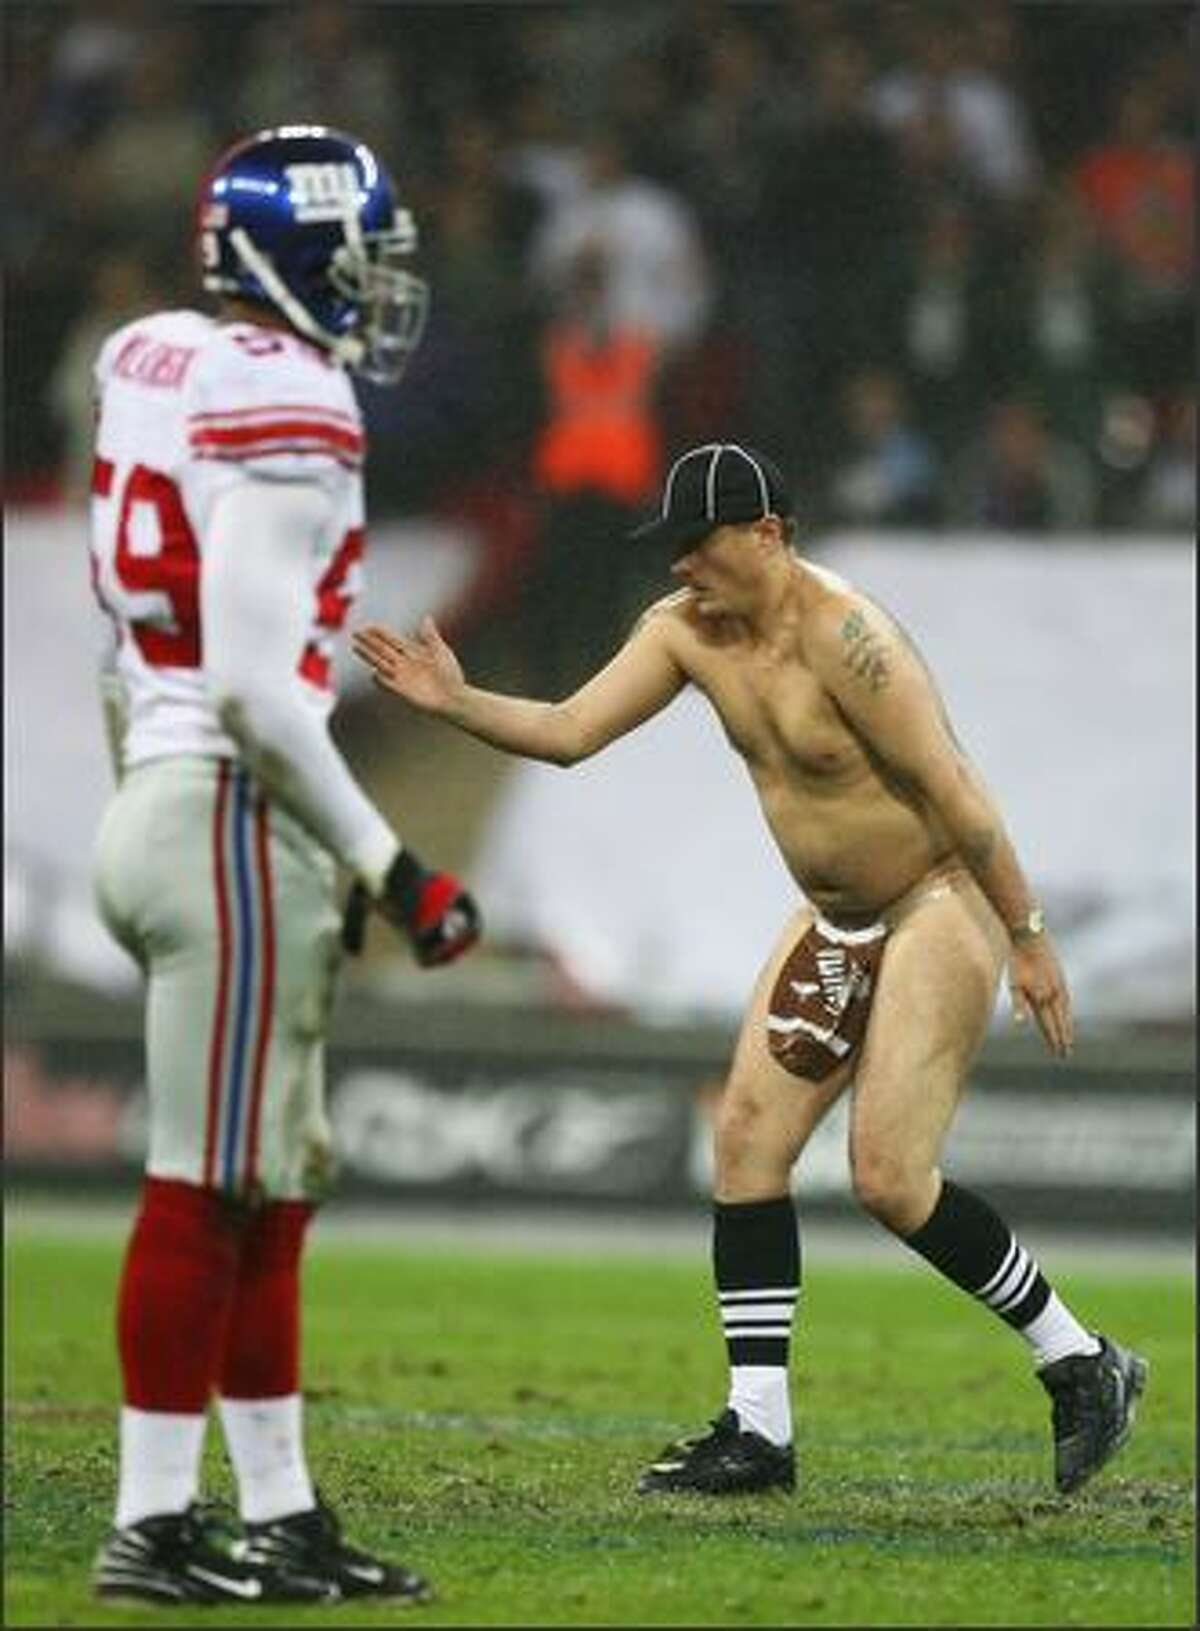 'Serial streaker' Mark Roberts dances on the field of play during the NFL Bridgestone International Series match between New York Giants and Miami Dolphins at Wembley Stadium in London, England. This is the first ever regular season NFL match to be played outside of the United States. (Photo by Al Bello/Getty Images)